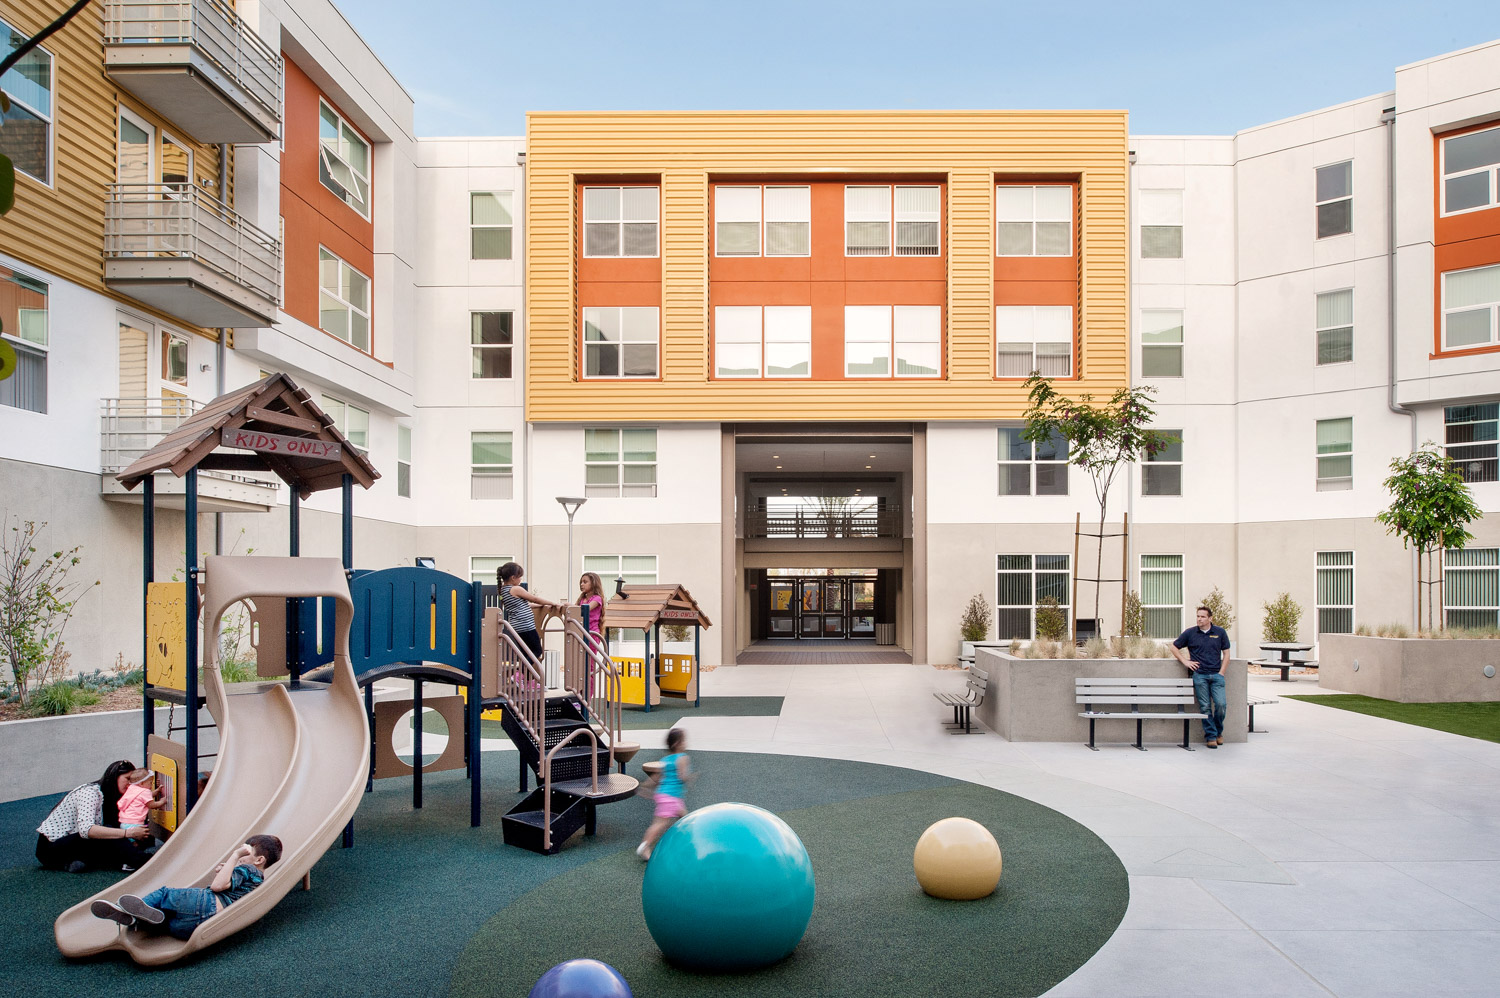 Paseo at Comm22 playground, community building, commercial architecture photographer, san diego photographer